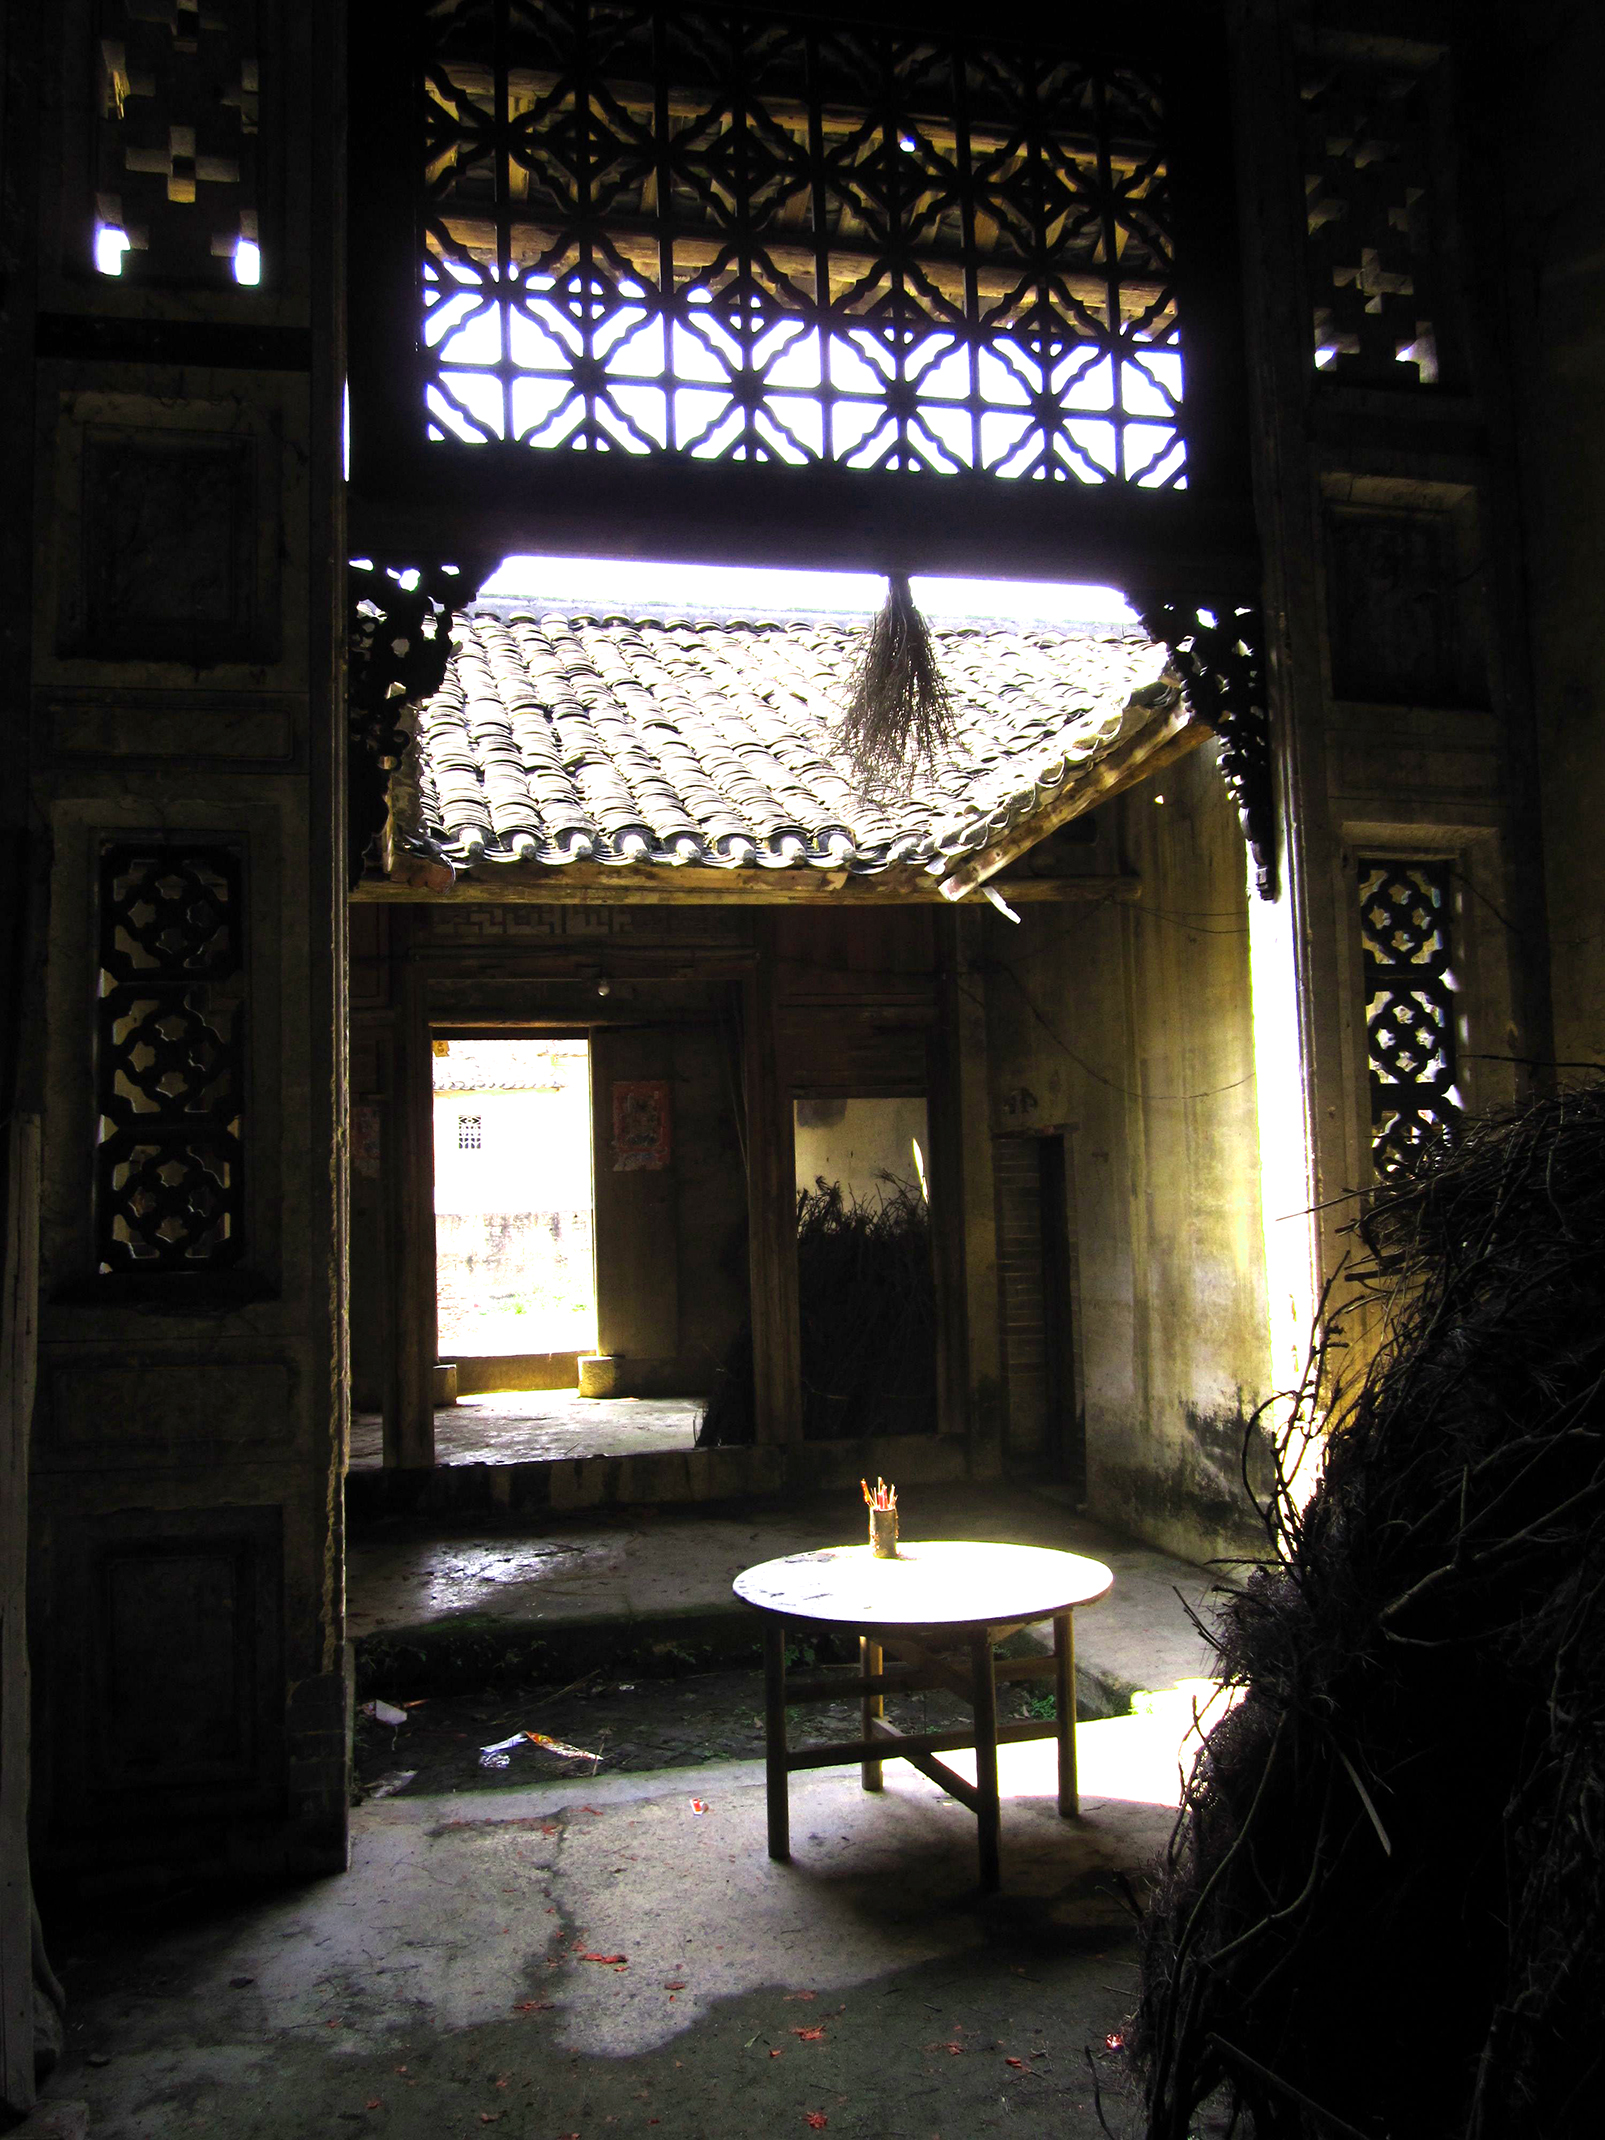 China abandoned house Guangdong province Pen & Wok Blog - PenAndWok.com - Cecilie's PenAndWok.com